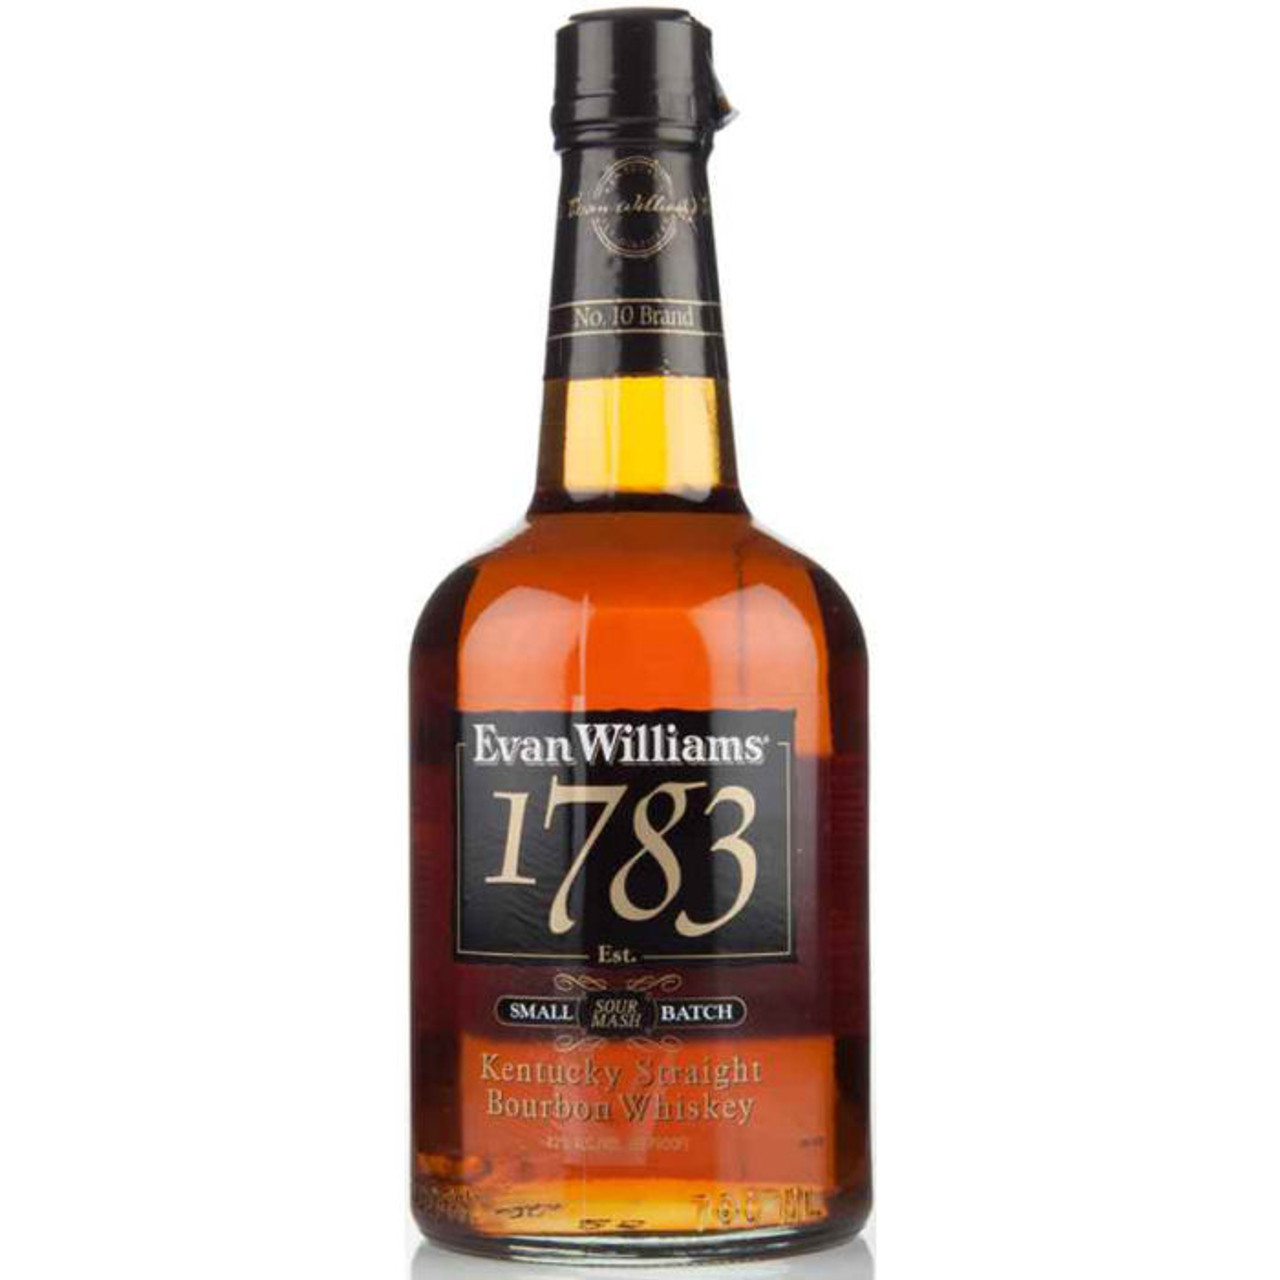 Evan Williams 1783 Kentucky Straight Bourbon Whiskey 750ml